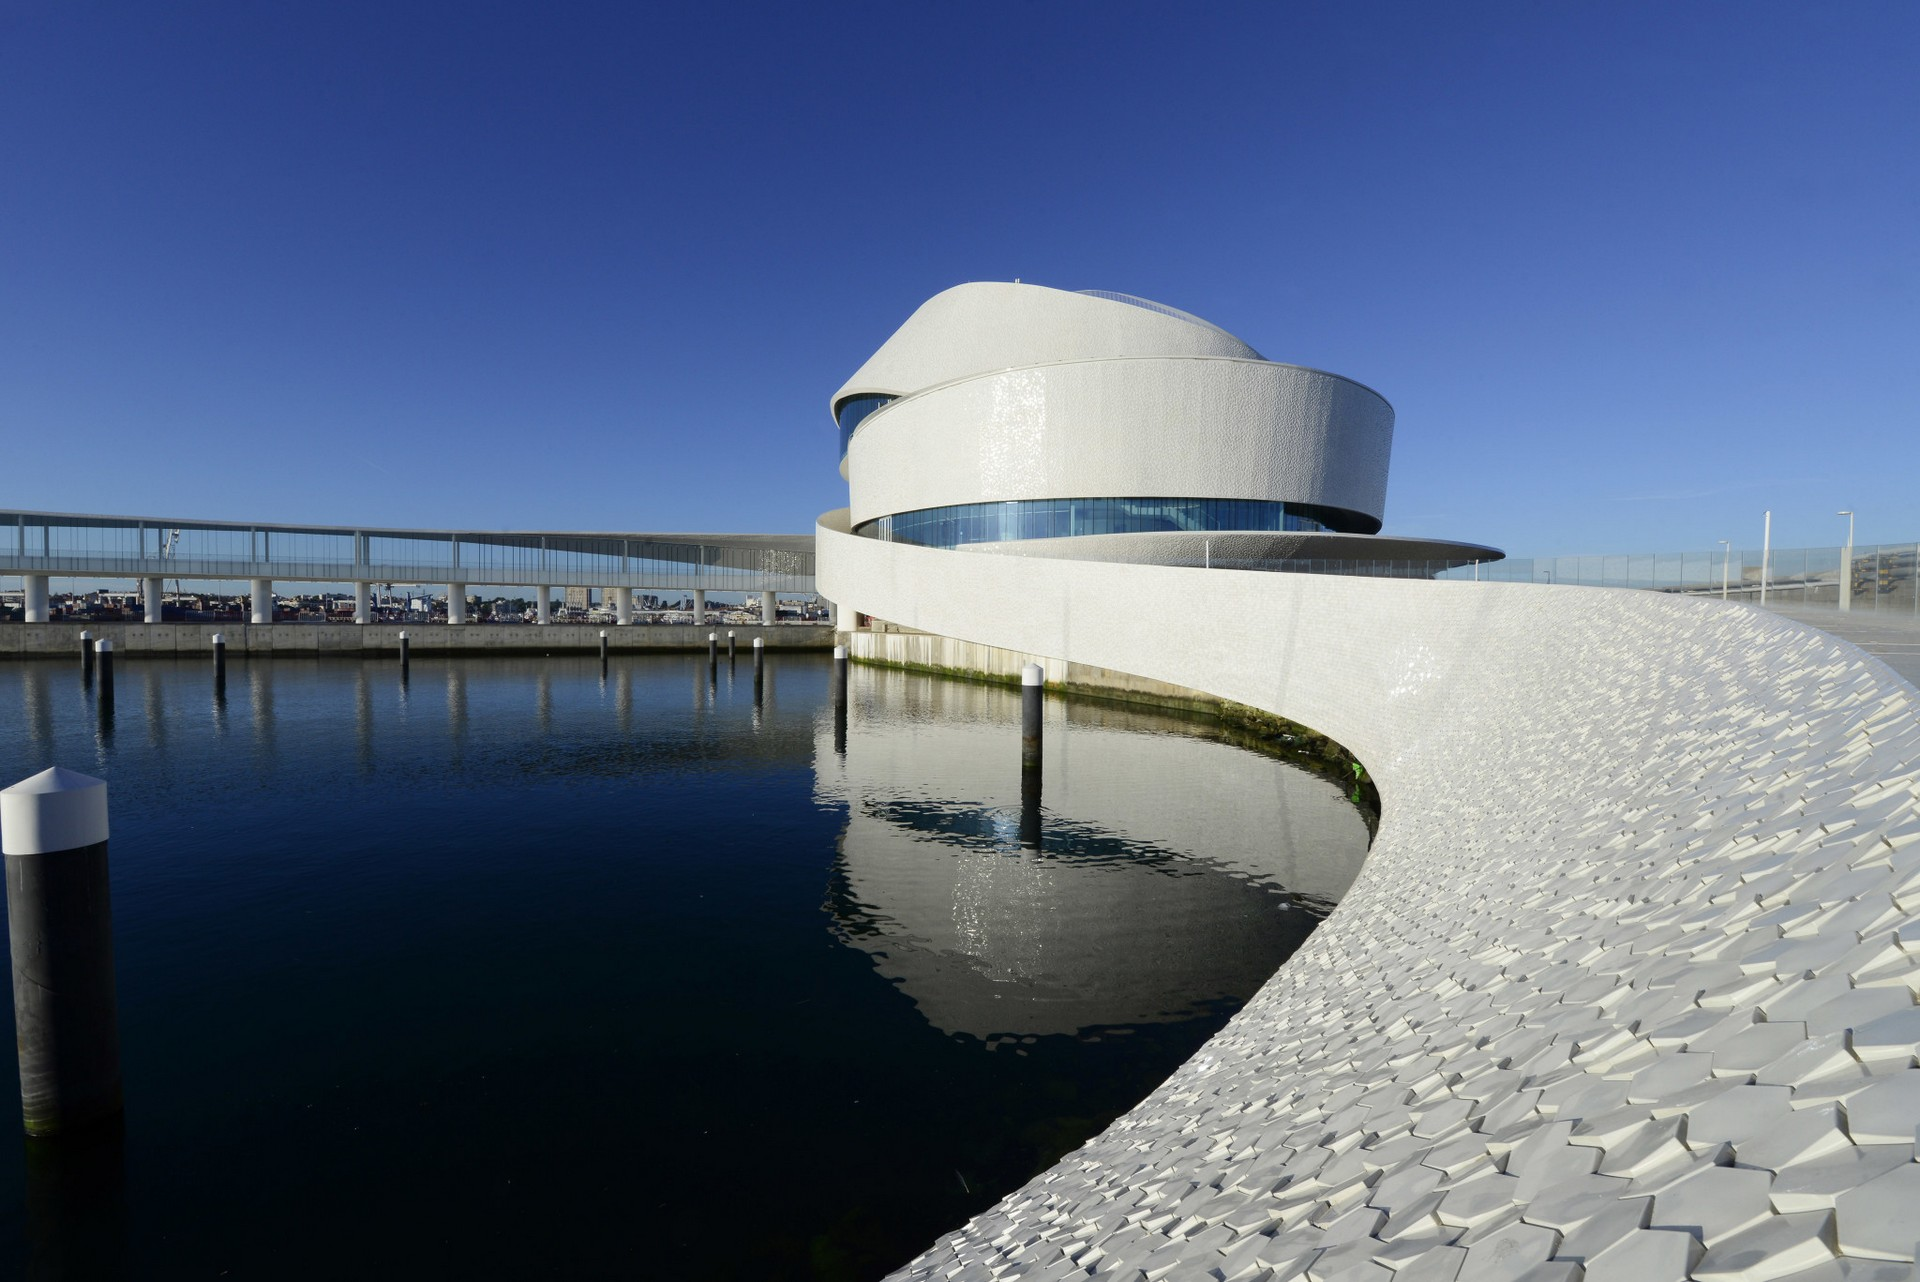 Best Architectural Design: Terminal de Cruzeiros do Porto de Leixões architectural design Discover the top 7 best architectural designs in Portugal Best Architectural Design 2